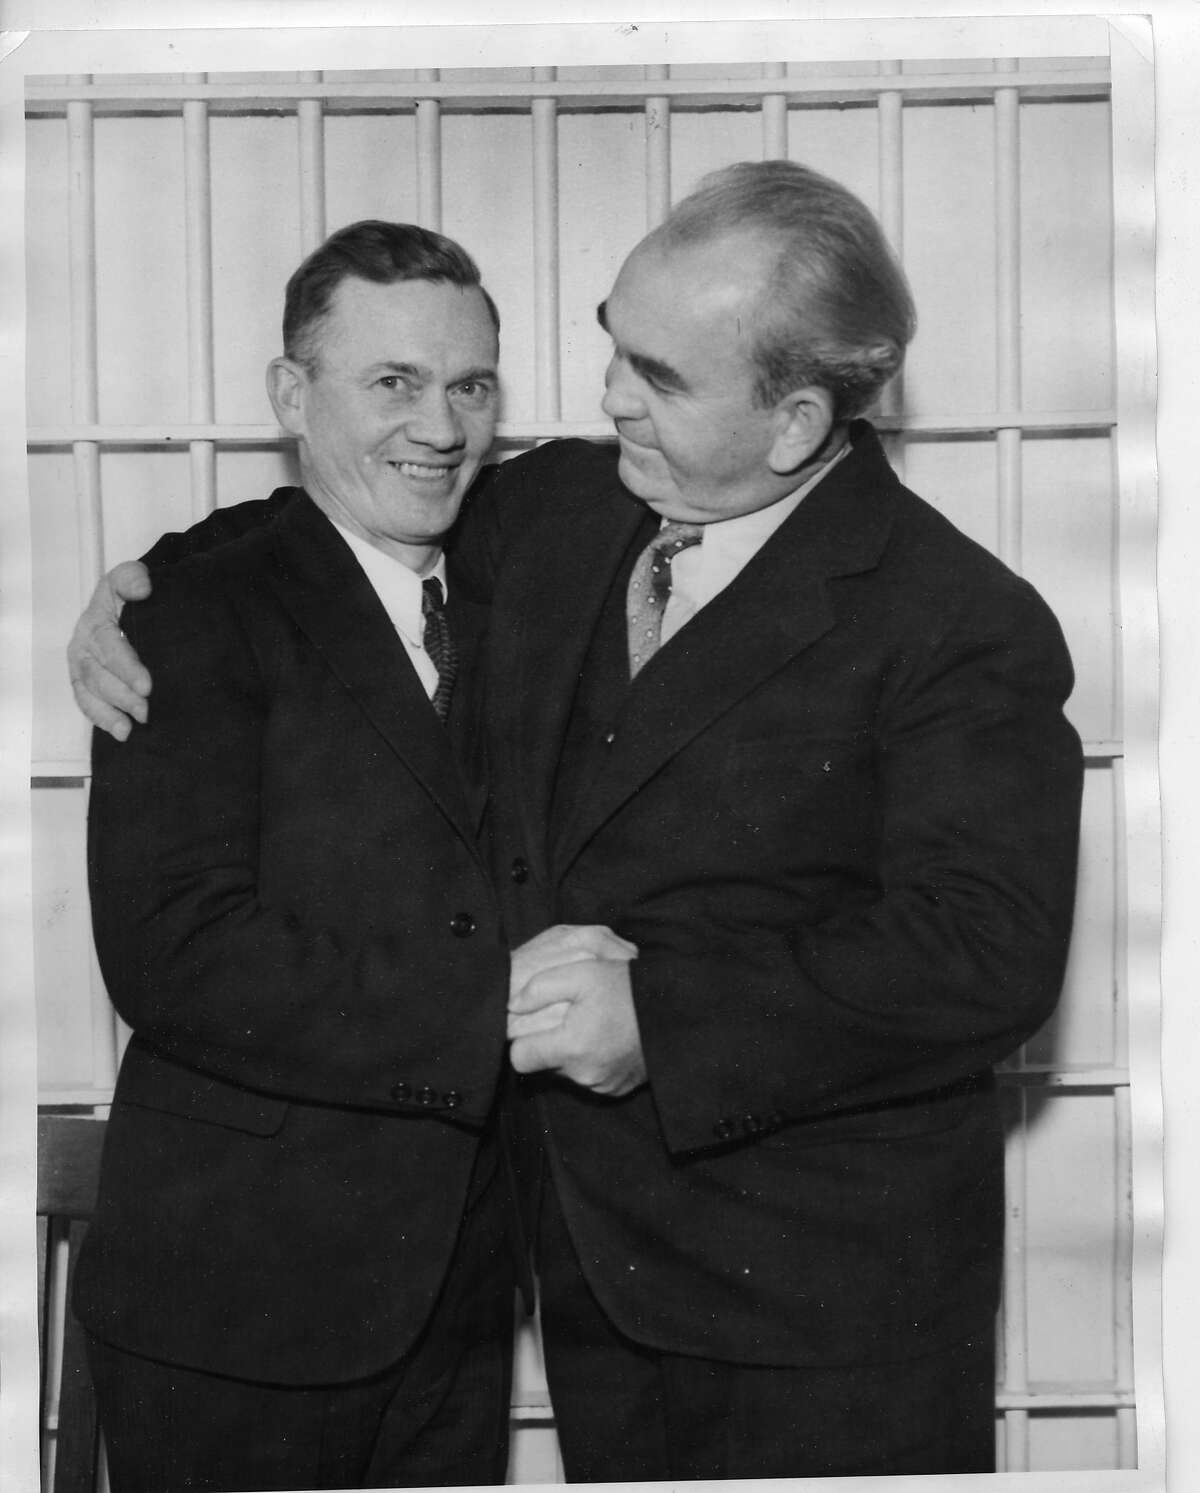 Warred Billings (left) meet in Tom Mooney's cell. It was their first meeting since the trial 18 years before. They are attending the Mooney Habeas Corpus hearing. The prison was Mooney's home for more than 22 years. He was convicted and sentenced to death for the 1916 Preparedness Day Parade bombing. His sentence was later commuted to life imprisonment. Associated Press Photo .. date on back may be Sept. 25 1935